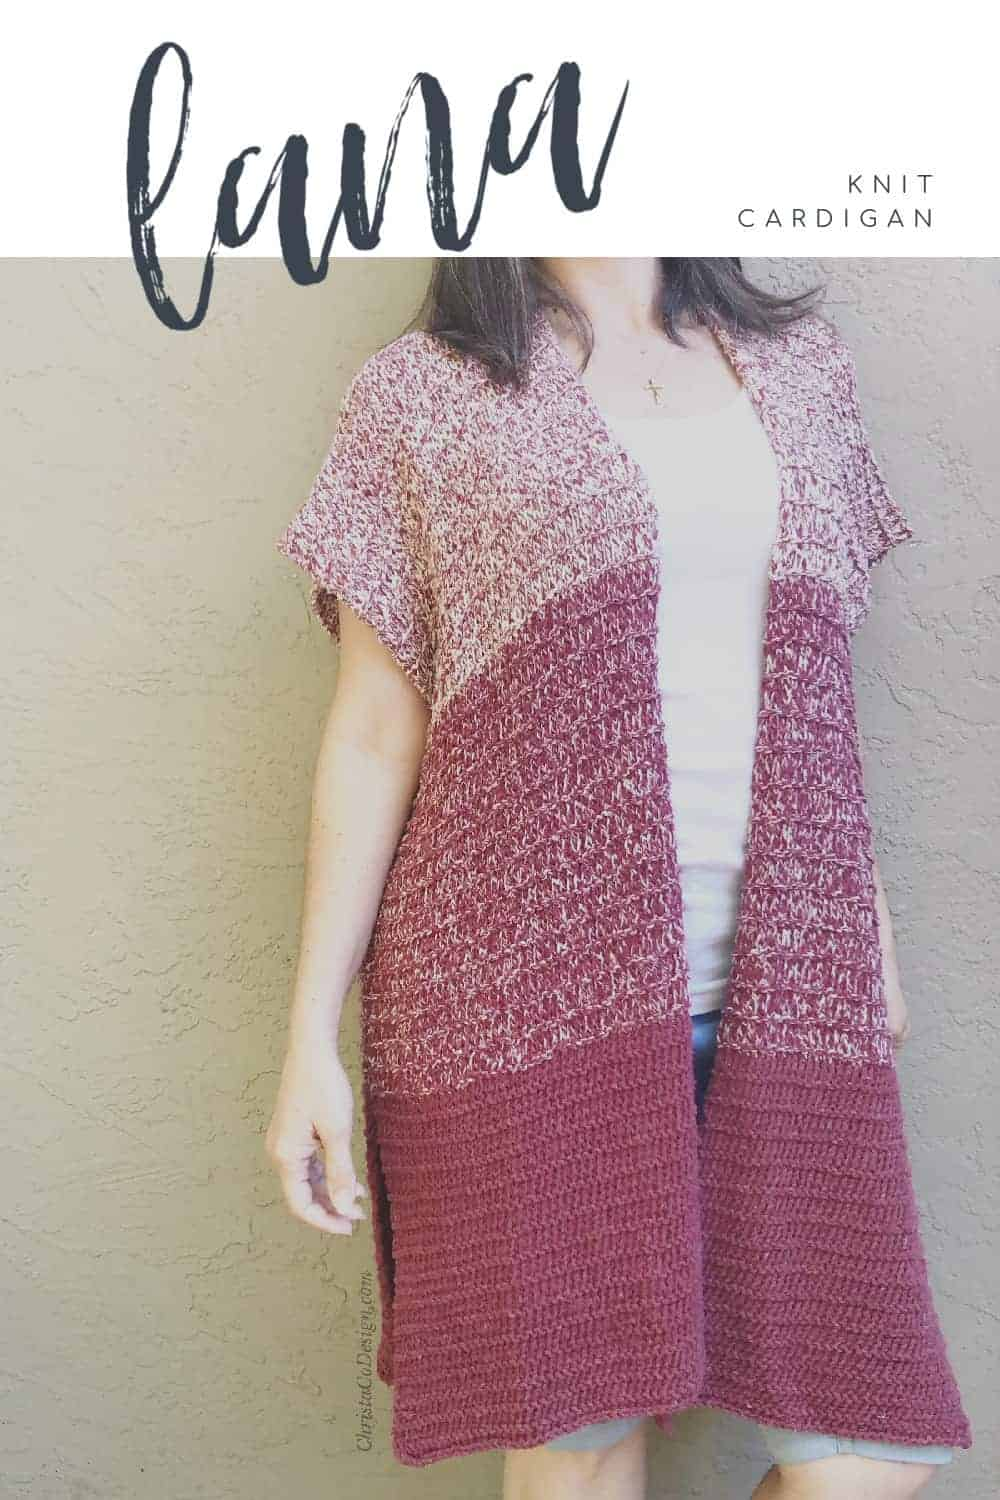 picture of woman in maroon knit cardigan pin image with text Lana